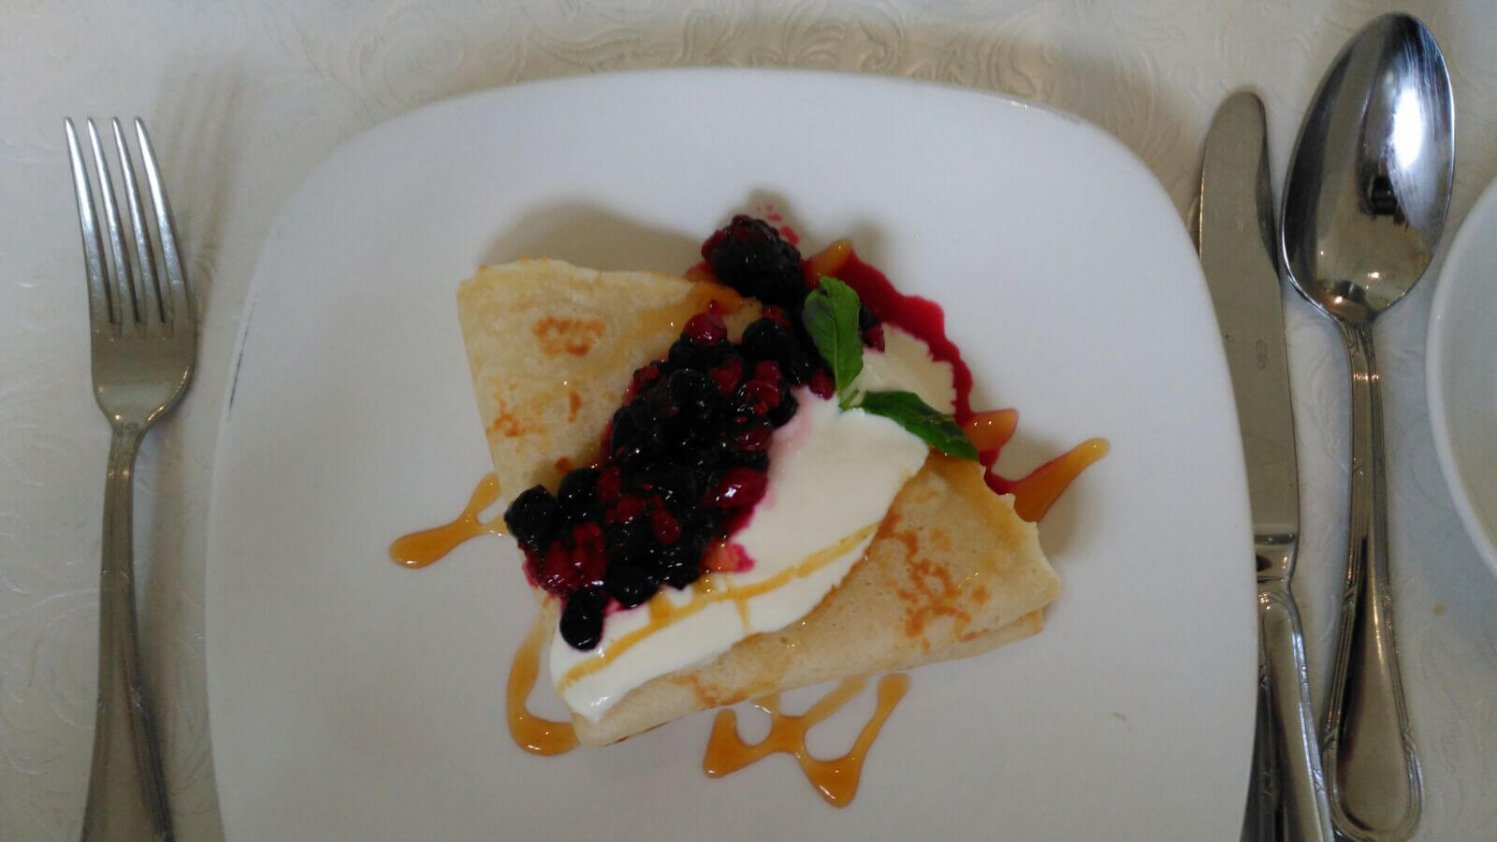 Pancakes served with fresh berries at Beech Hill Country House in Derry